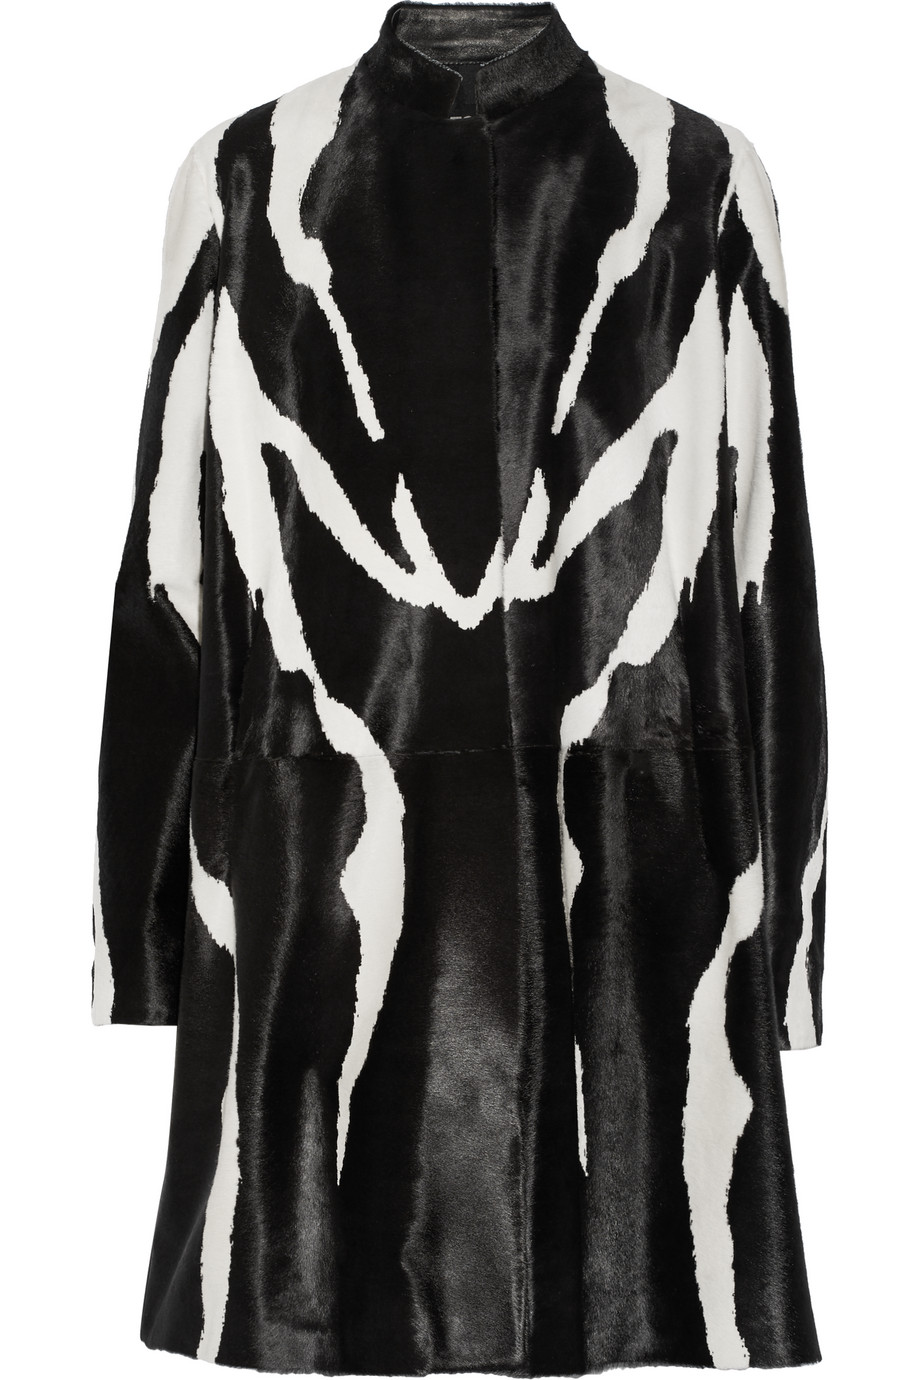 Zebra-Print Calf Hair Coat, Black/Zebra Print, Women's, Size: 38